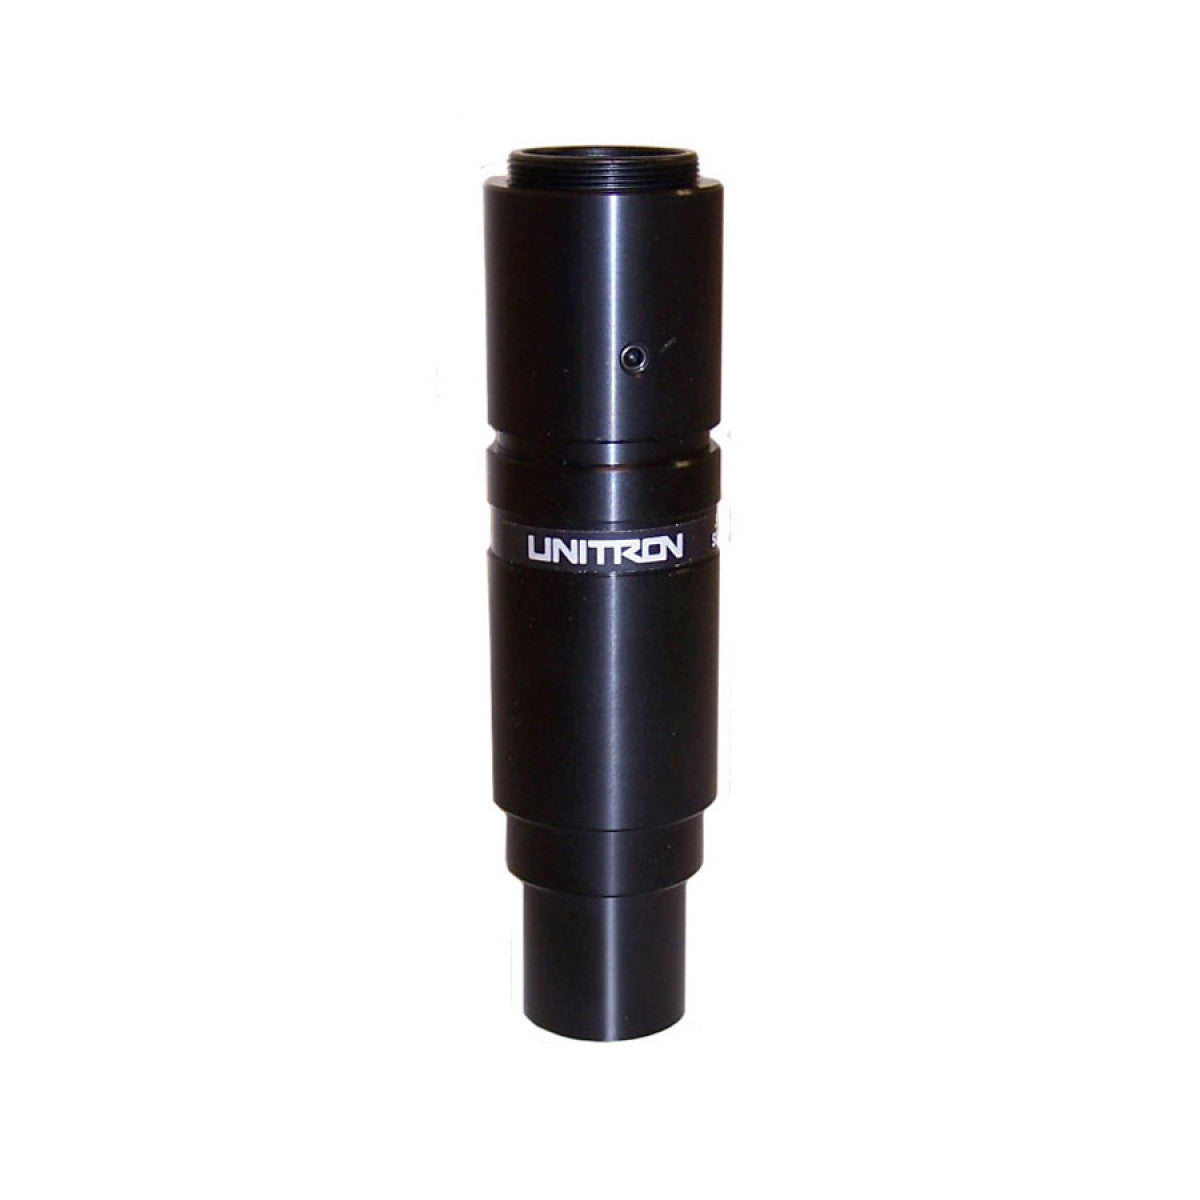 Camera and Video Adapter for Unitron 12100 Pol Scope Series